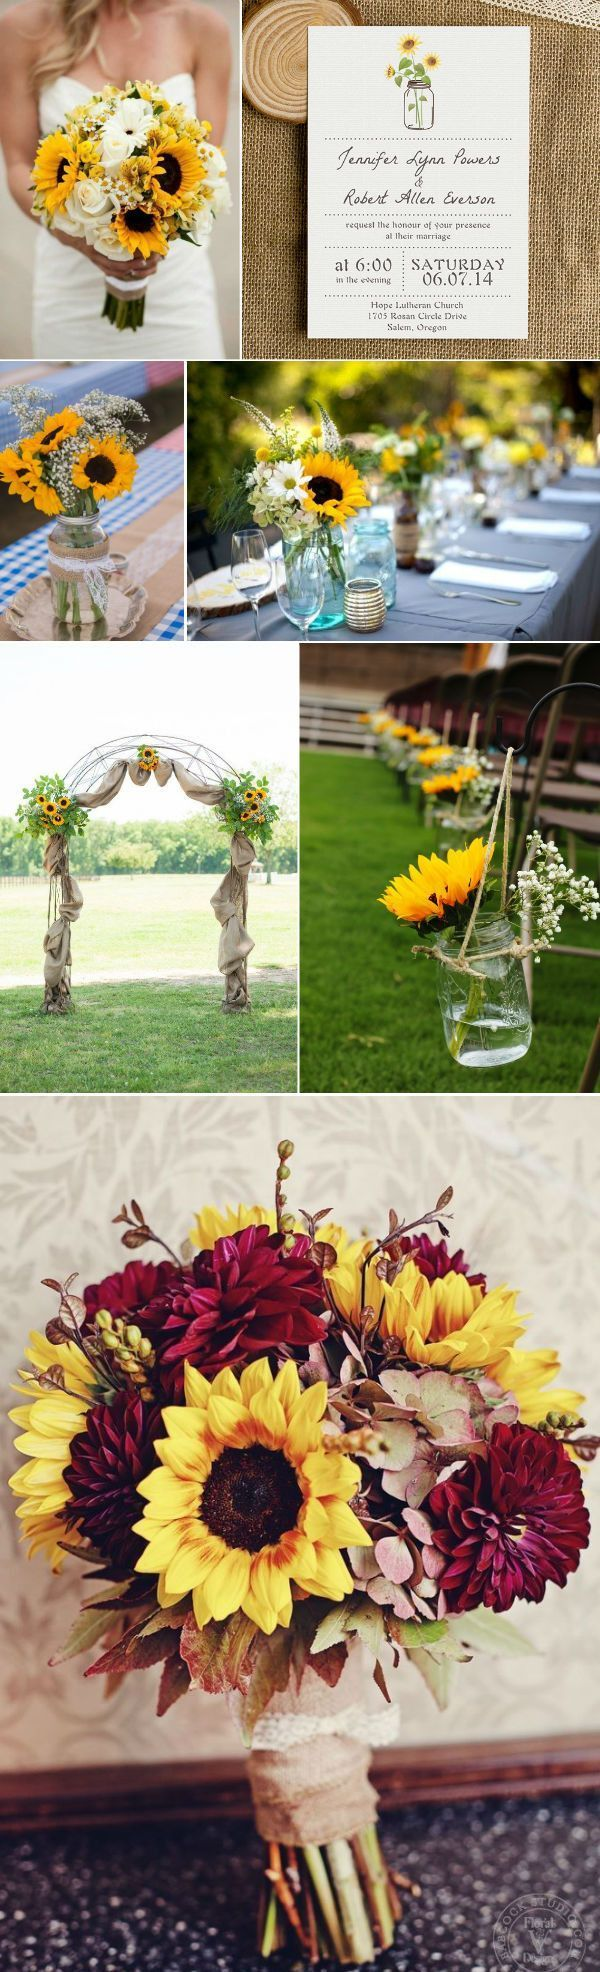 ideas for rustic wedding reception%0A Five Rustic Wedding Themes With Mason Jars